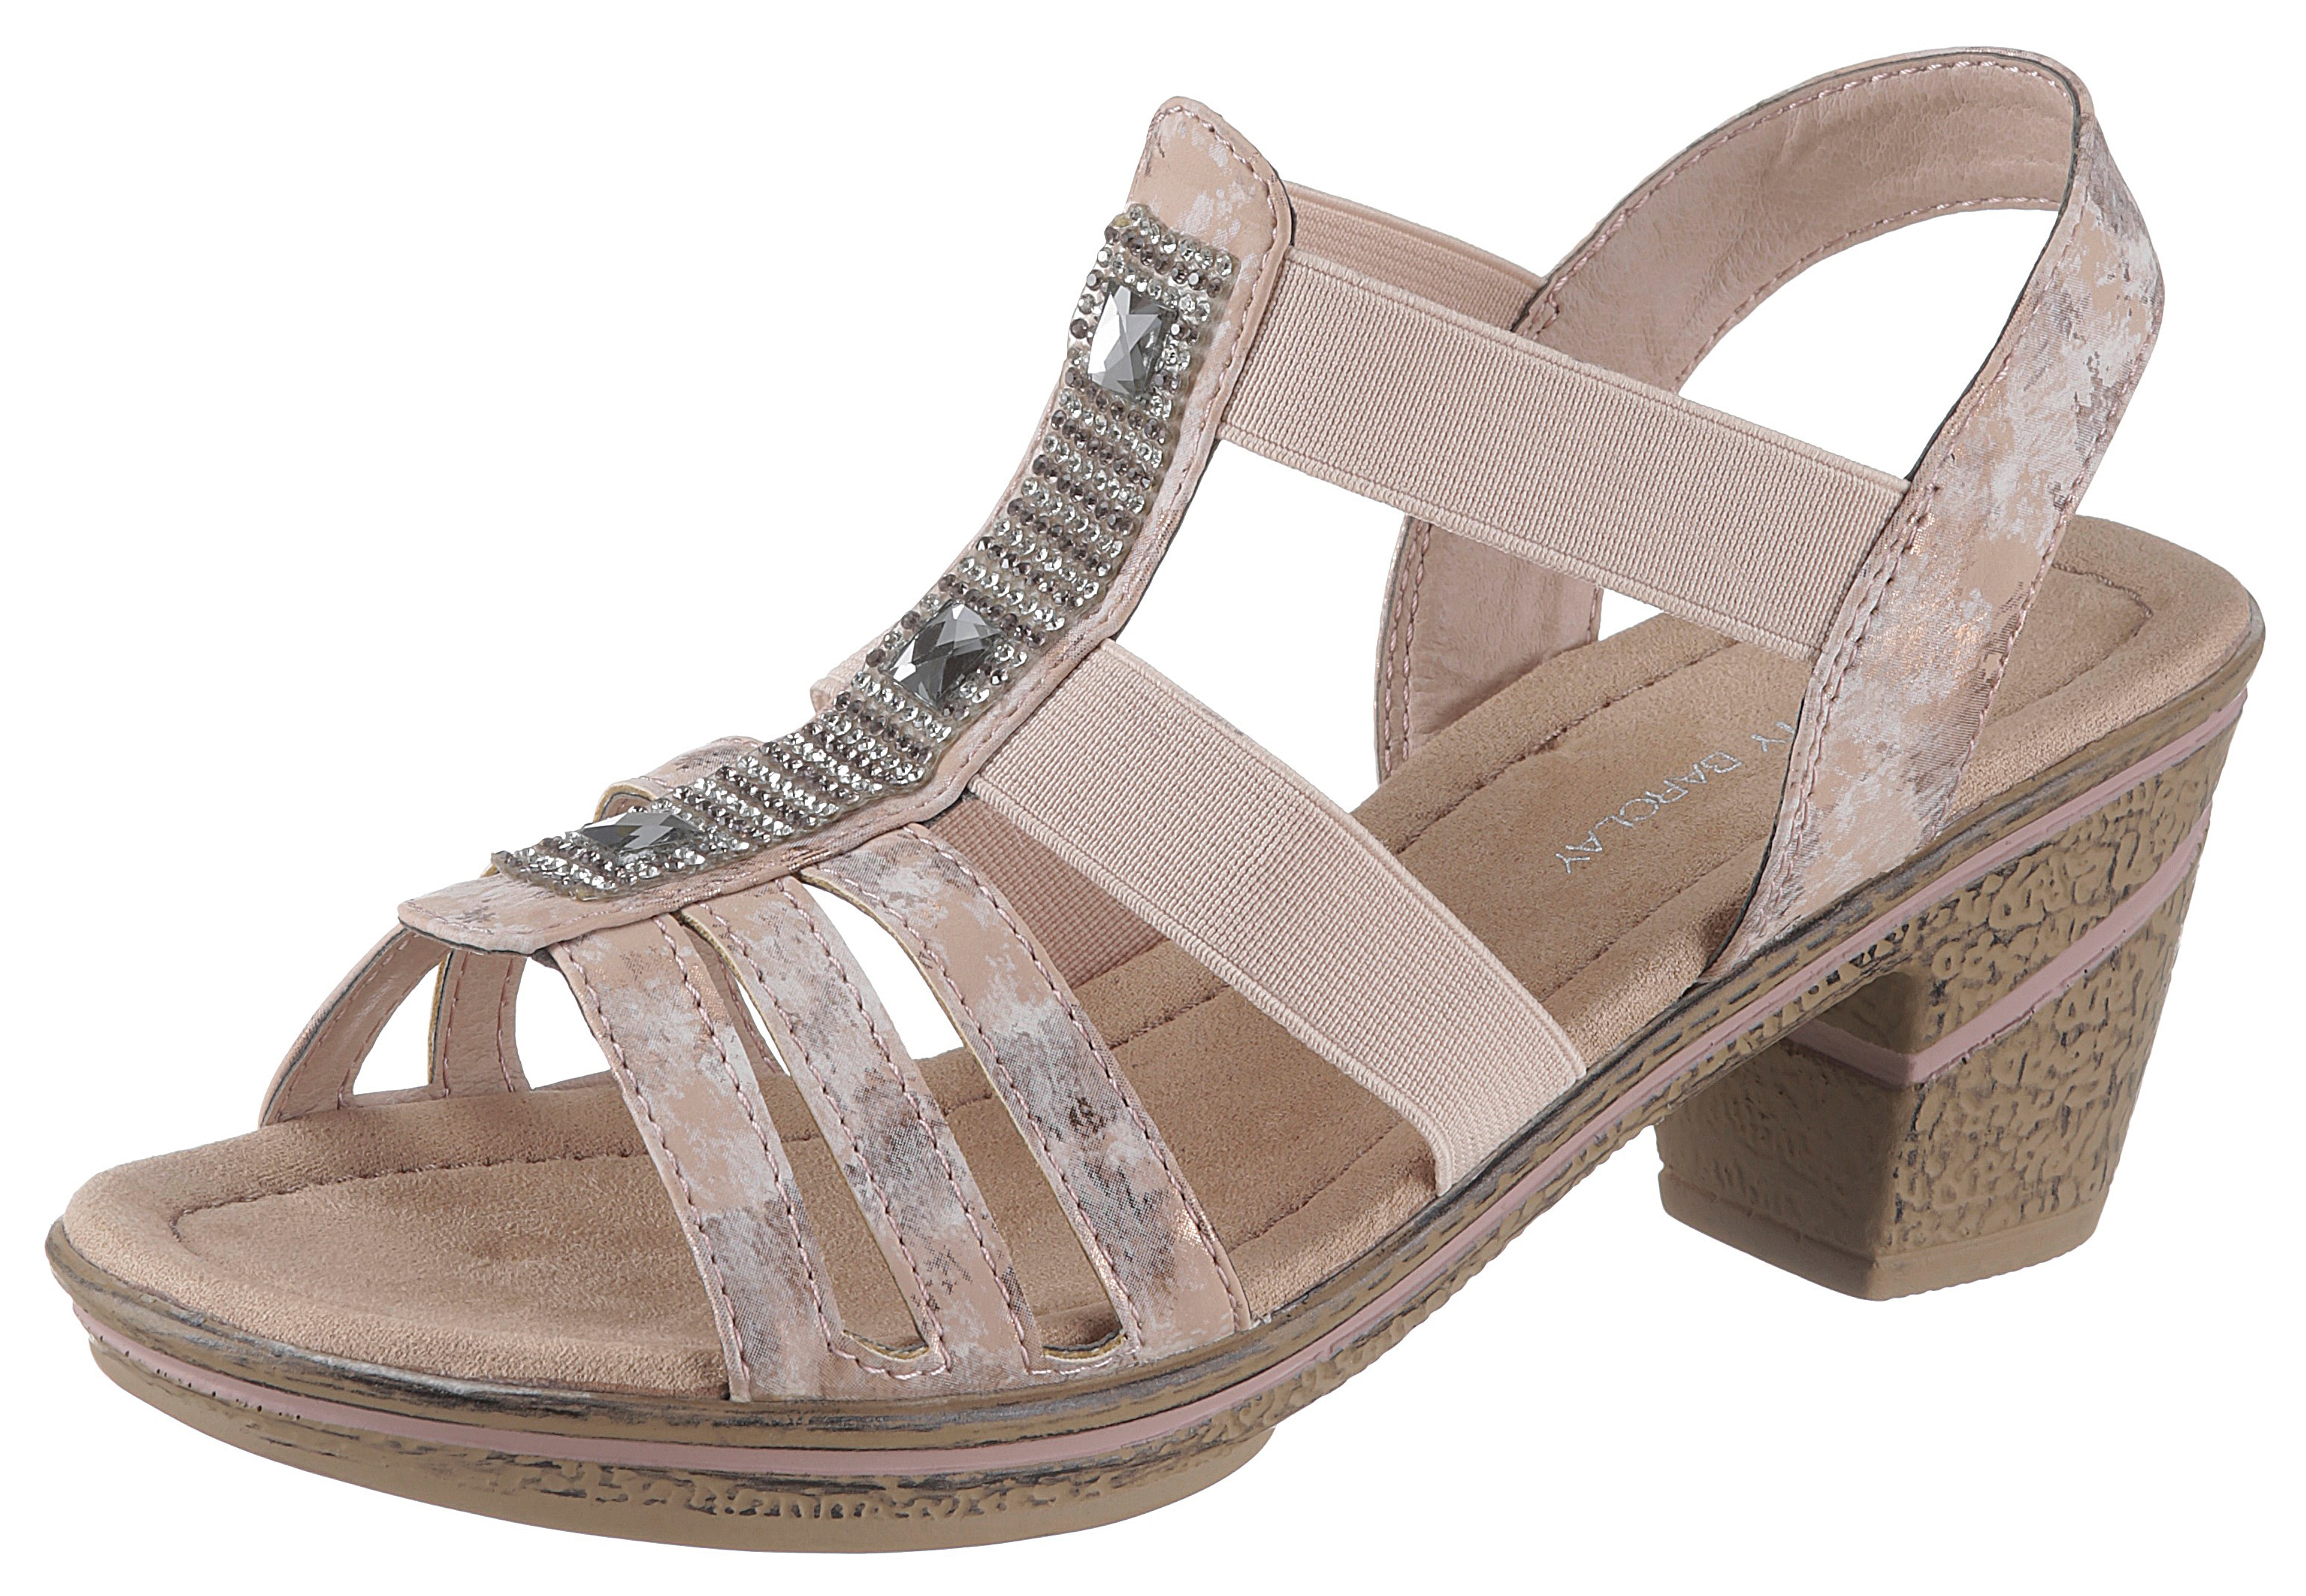 betty barclay shoes -  Sandalette